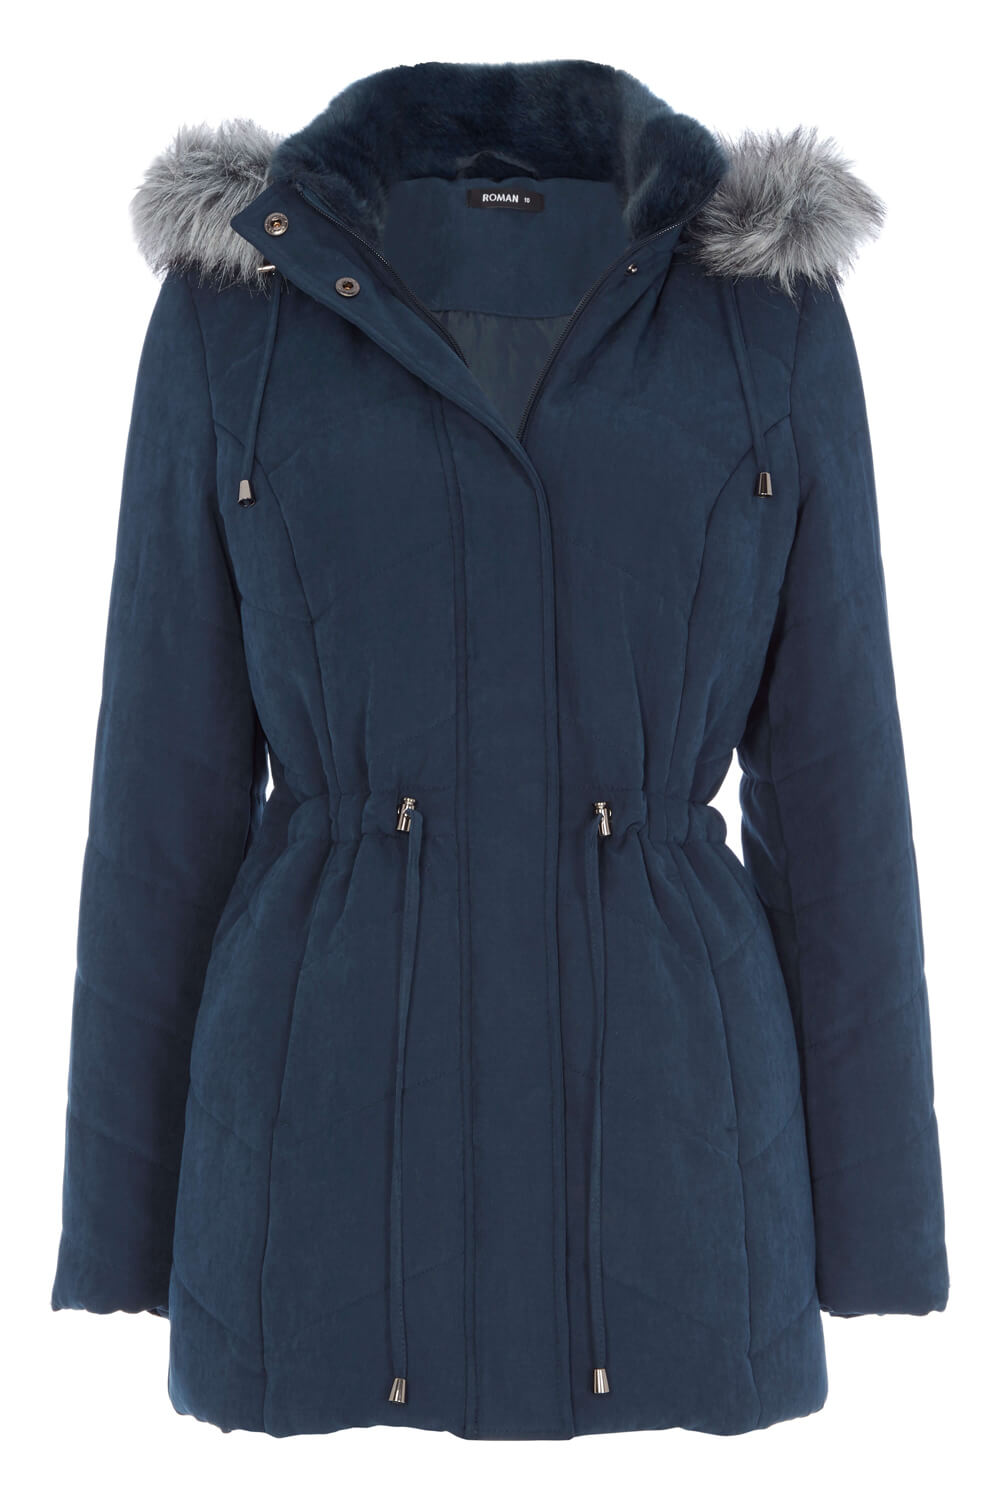 Roman-Originals-Women-039-s-Blue-Quilted-Parka-Coat-with-Hood-Sizes-10-20 thumbnail 19